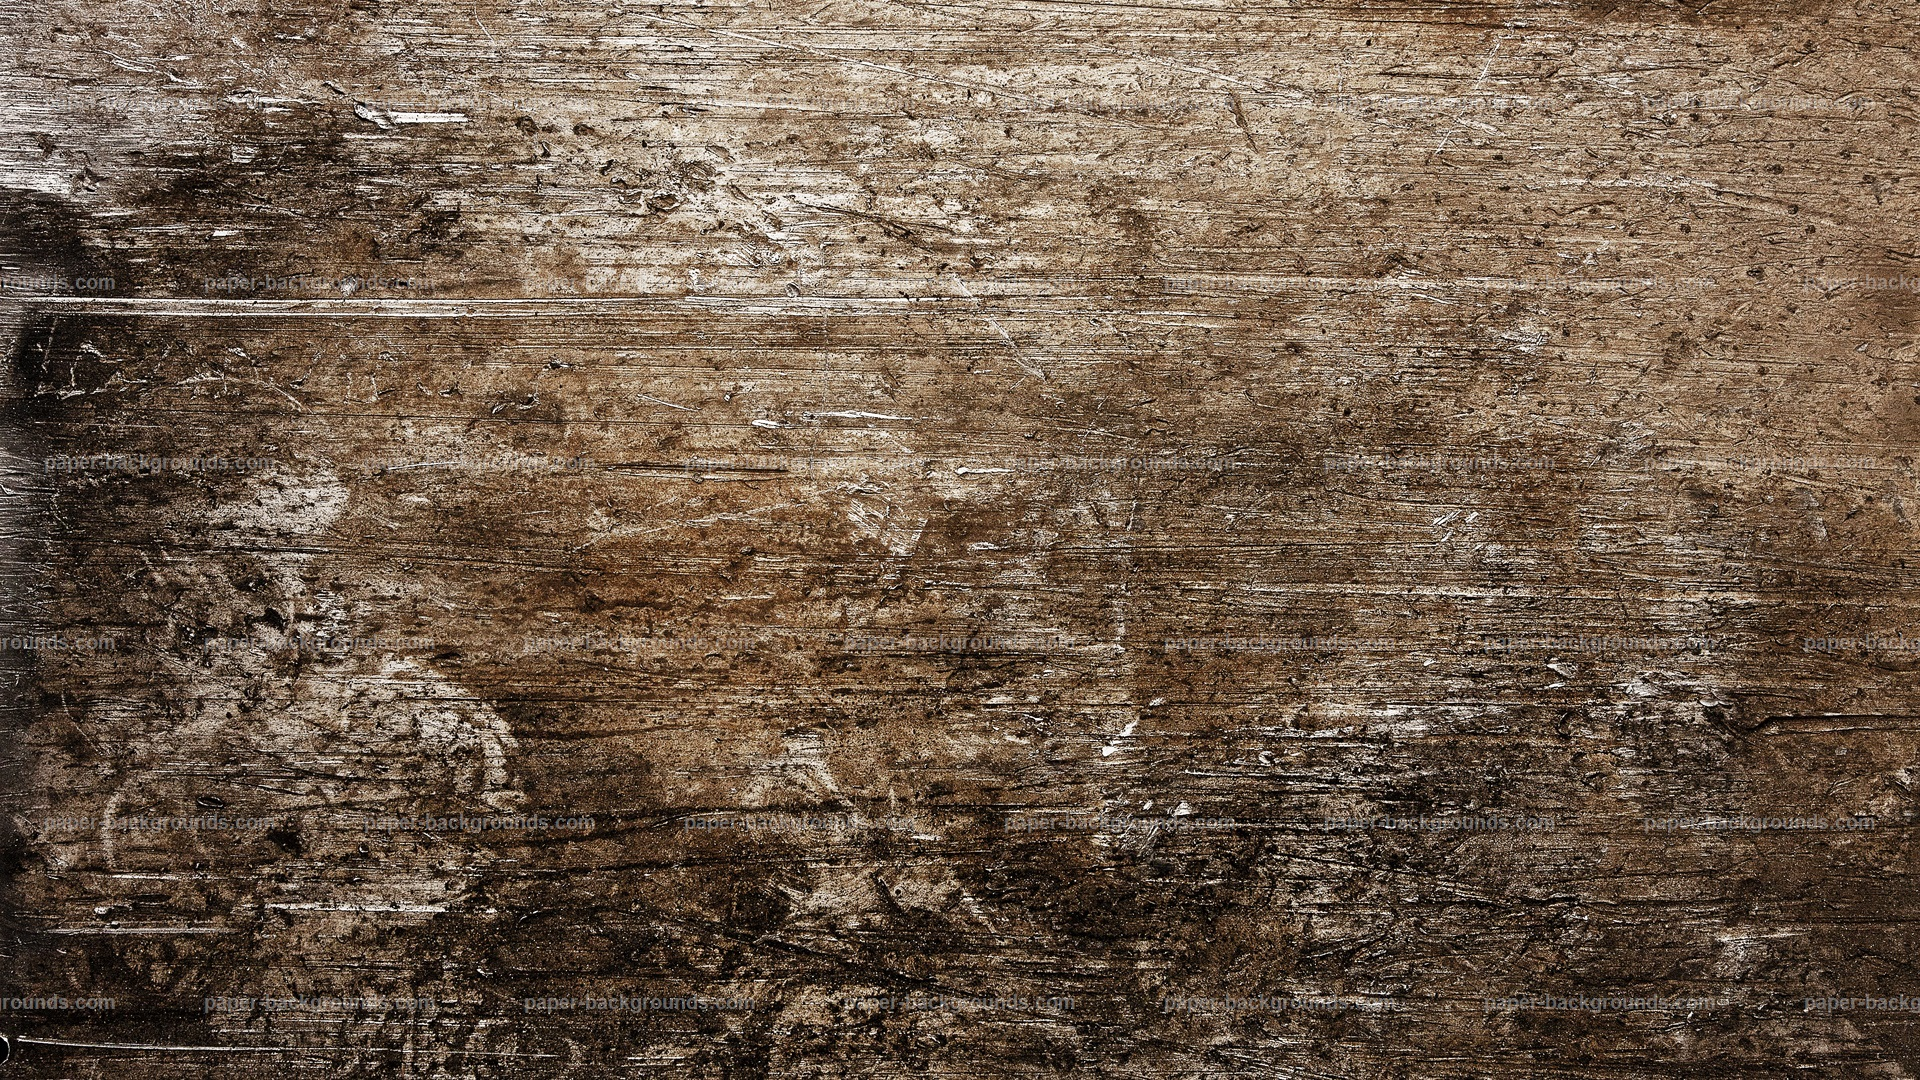 Old Grunge Rusty Scratched Metal Texture HD